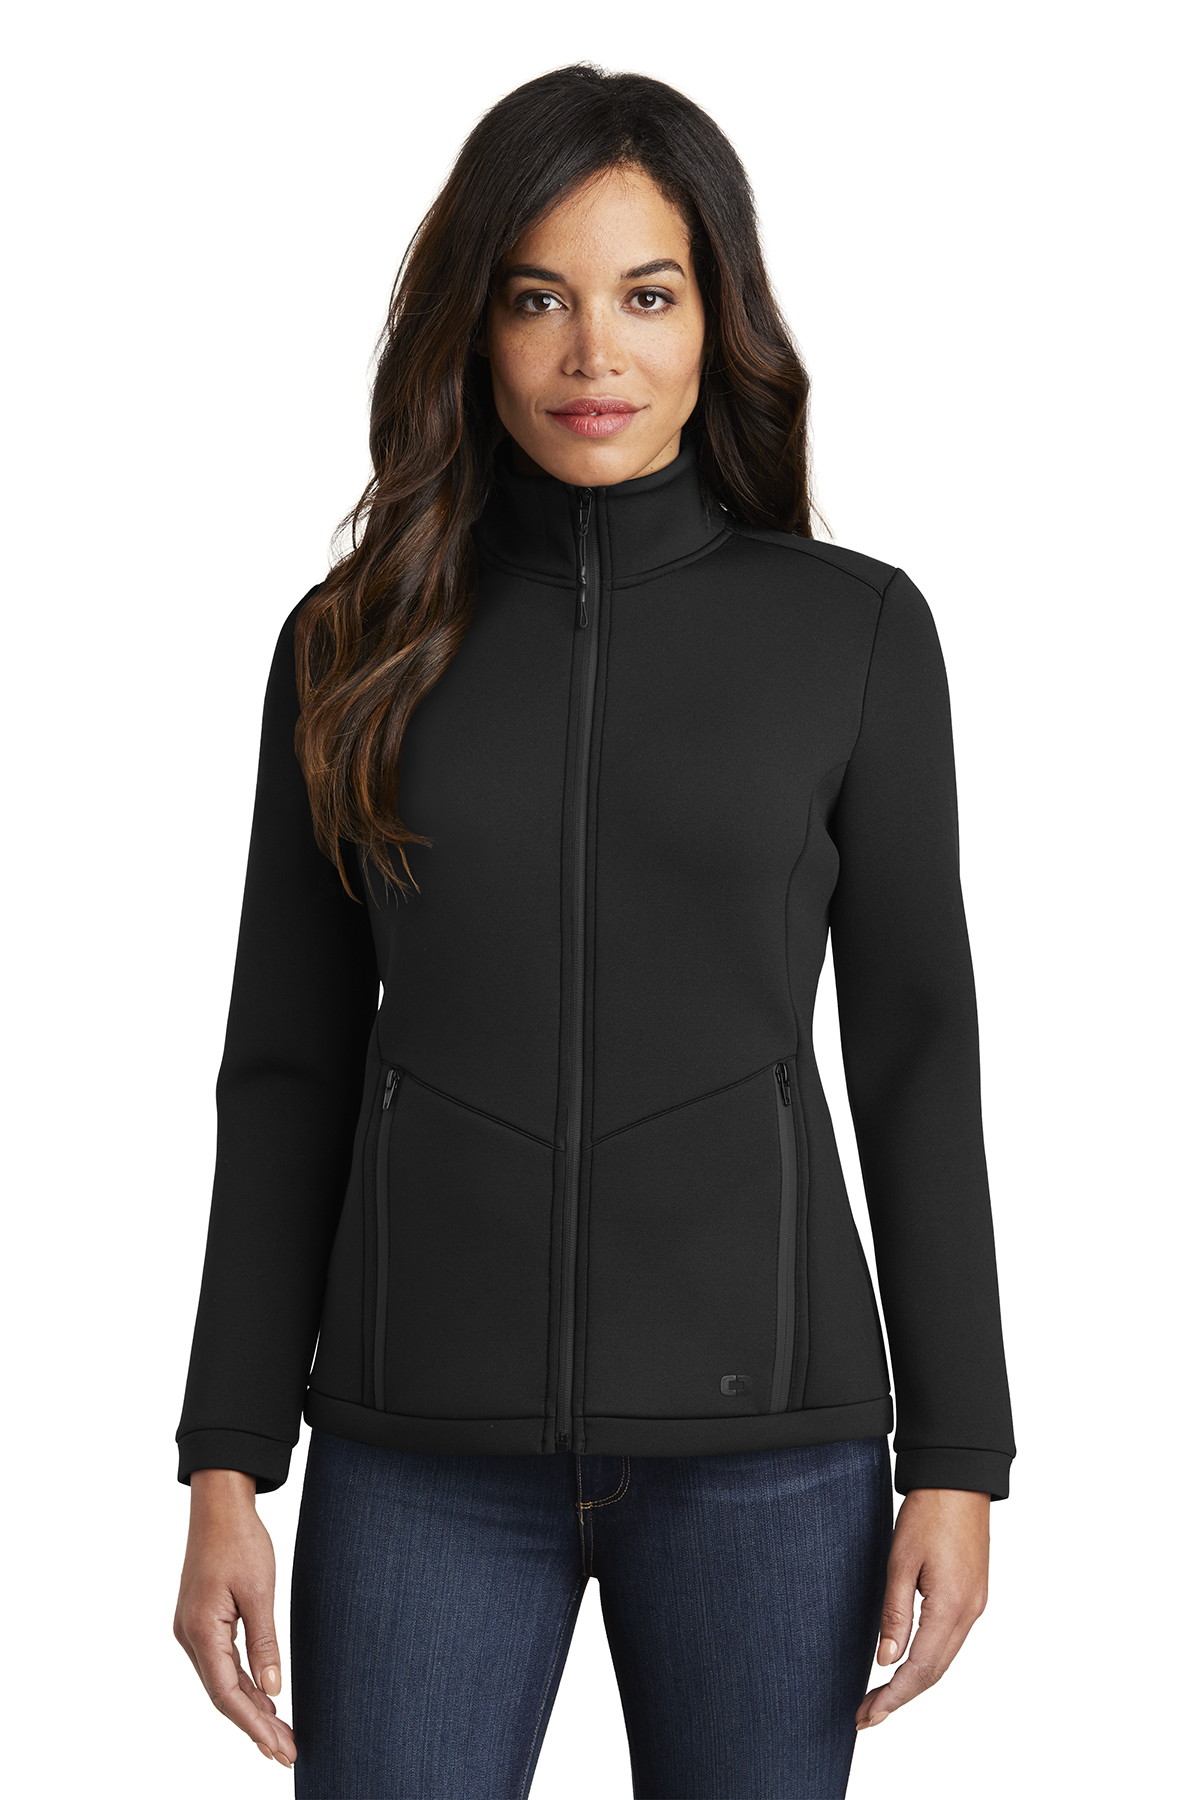 OGIO LOG724 - Ladies Axis Bonded Jacket